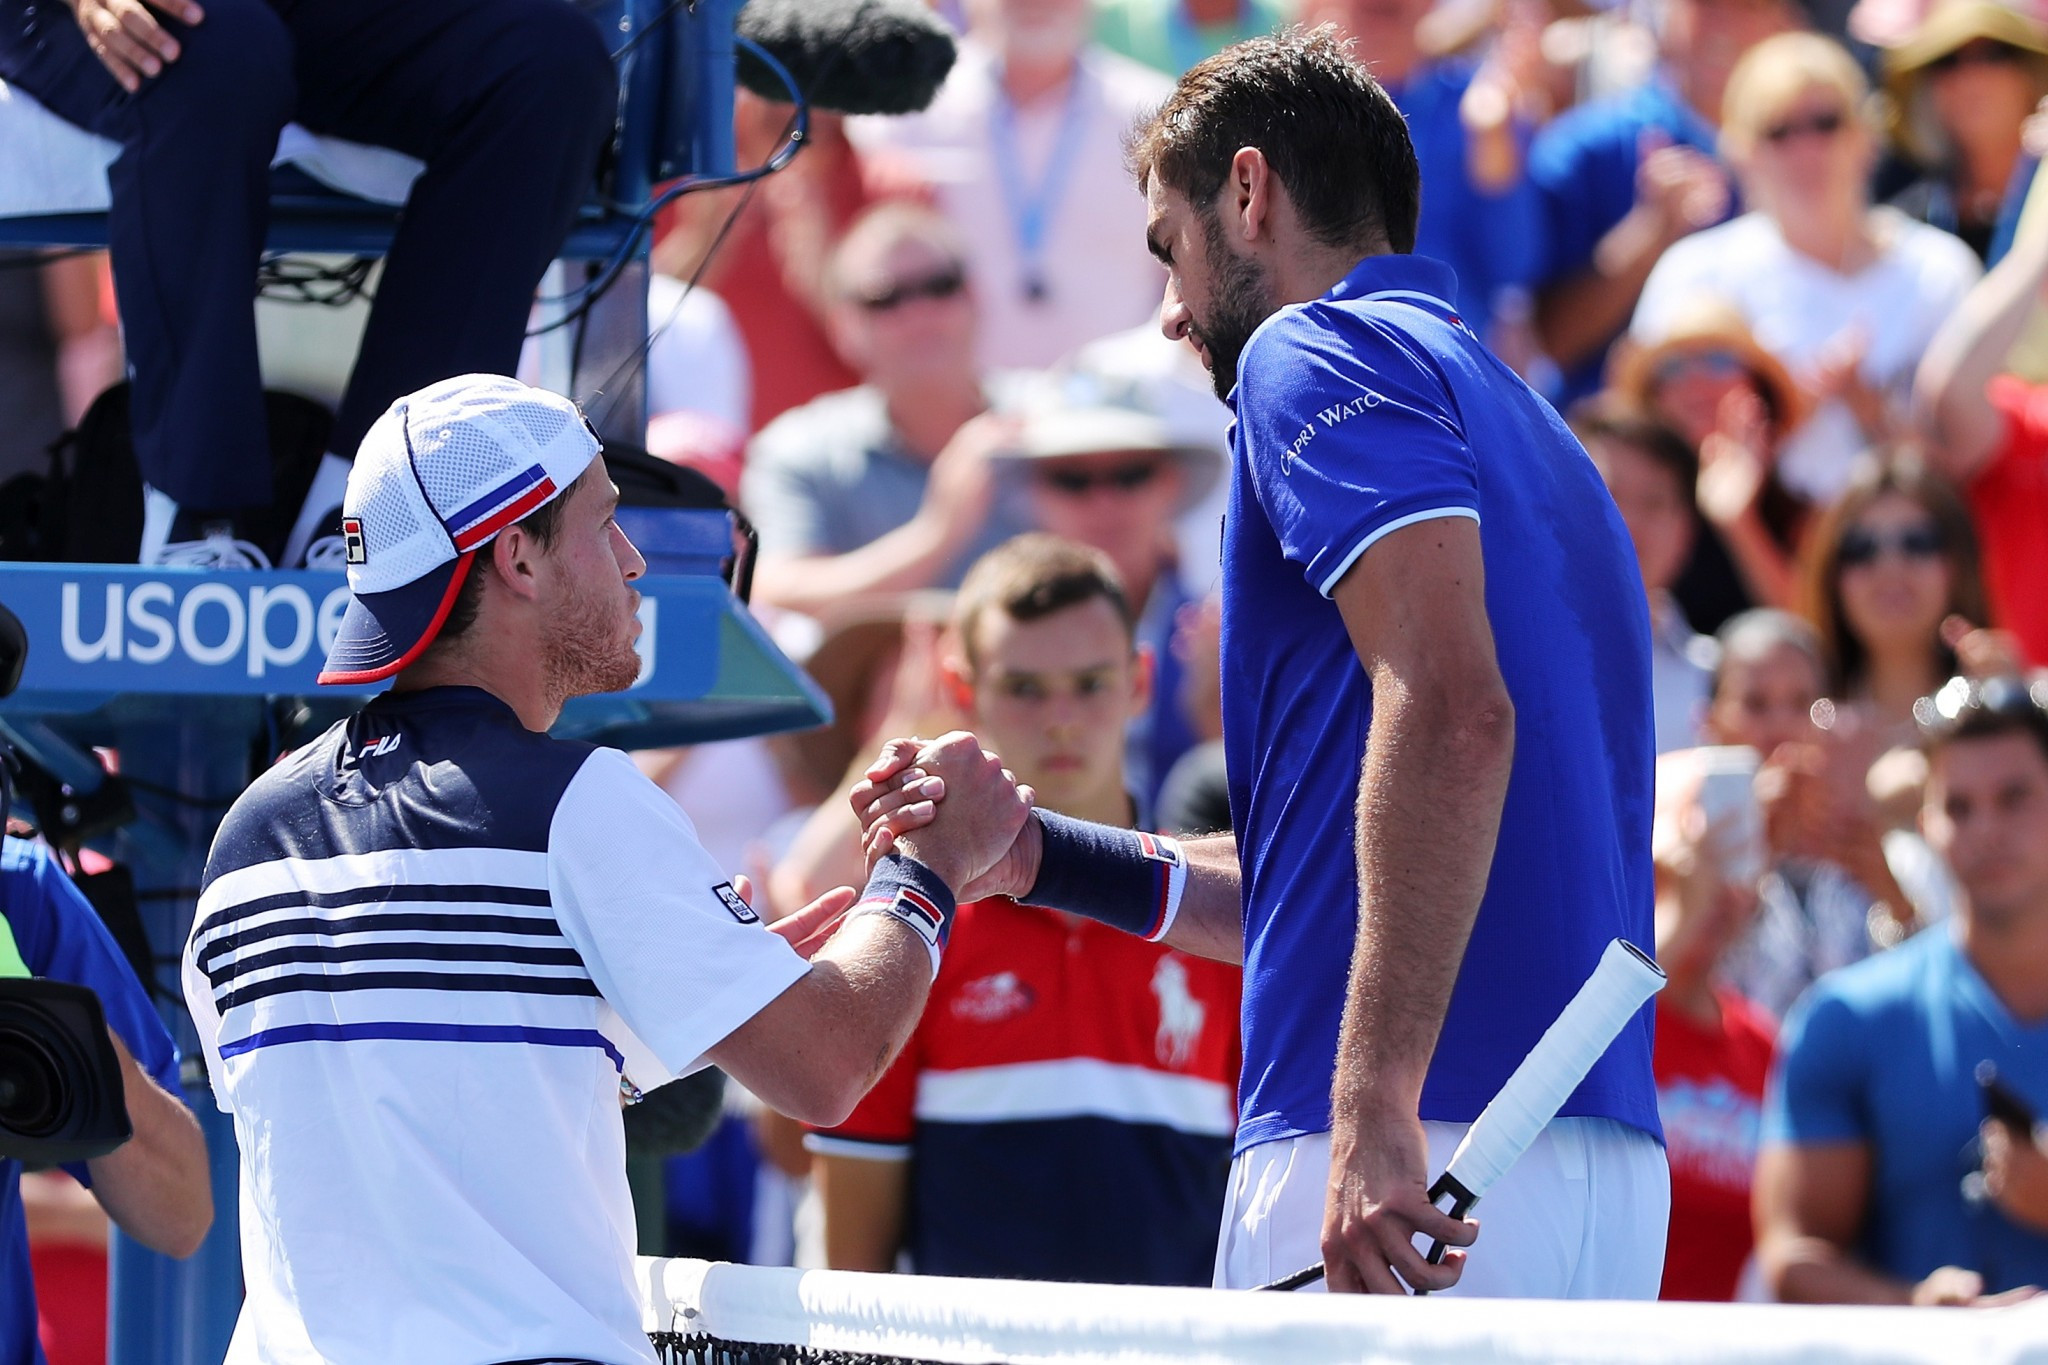 Former champion Cilic suffers shock elimination at US Open